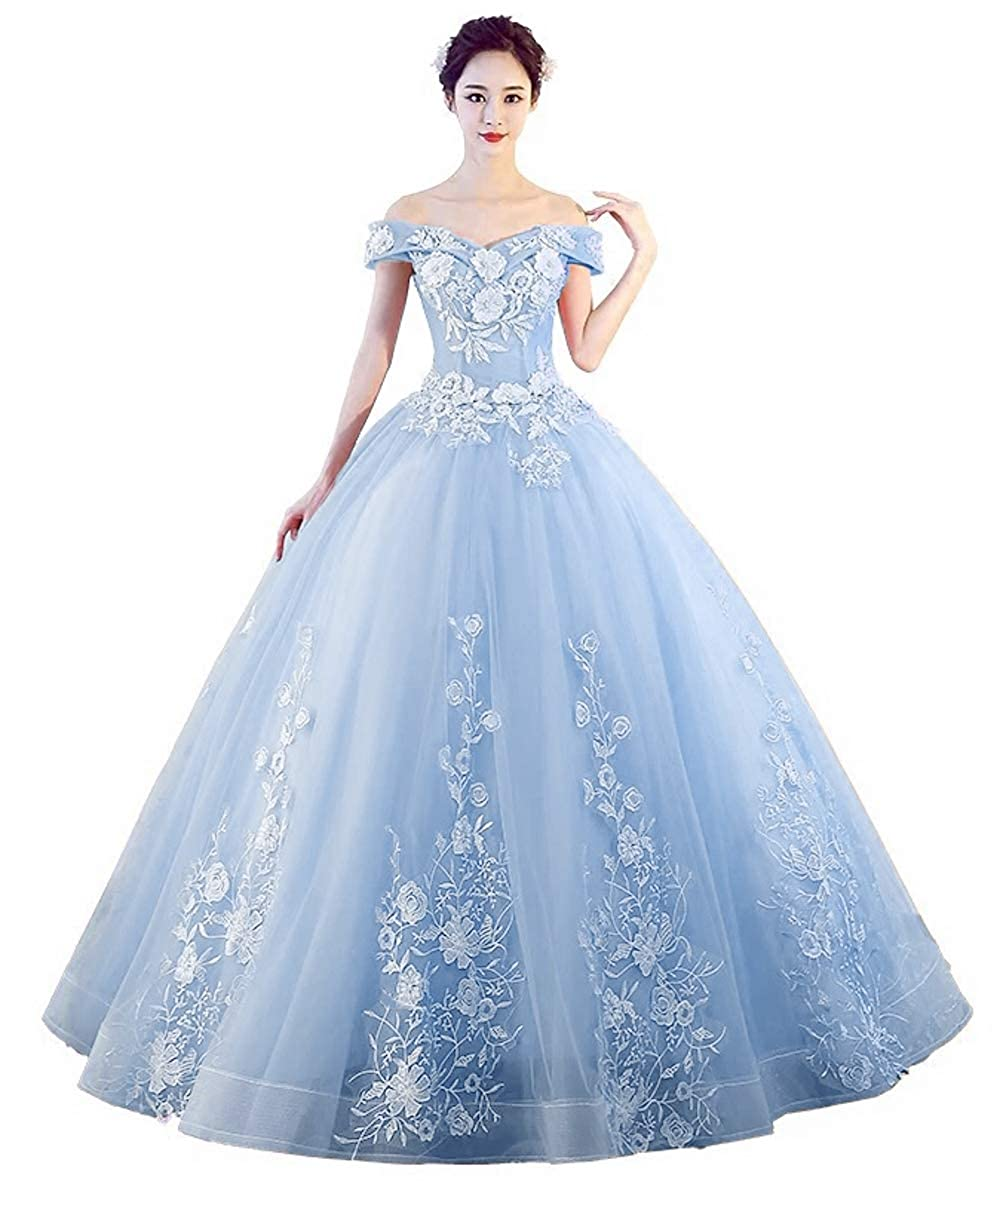 4d0d74ca829fd LEJY Women s Off The Shoulder Quinceanera Dresses Applique Masquerade Ball  Gowns Prom Dresses at Amazon Women s Clothing store